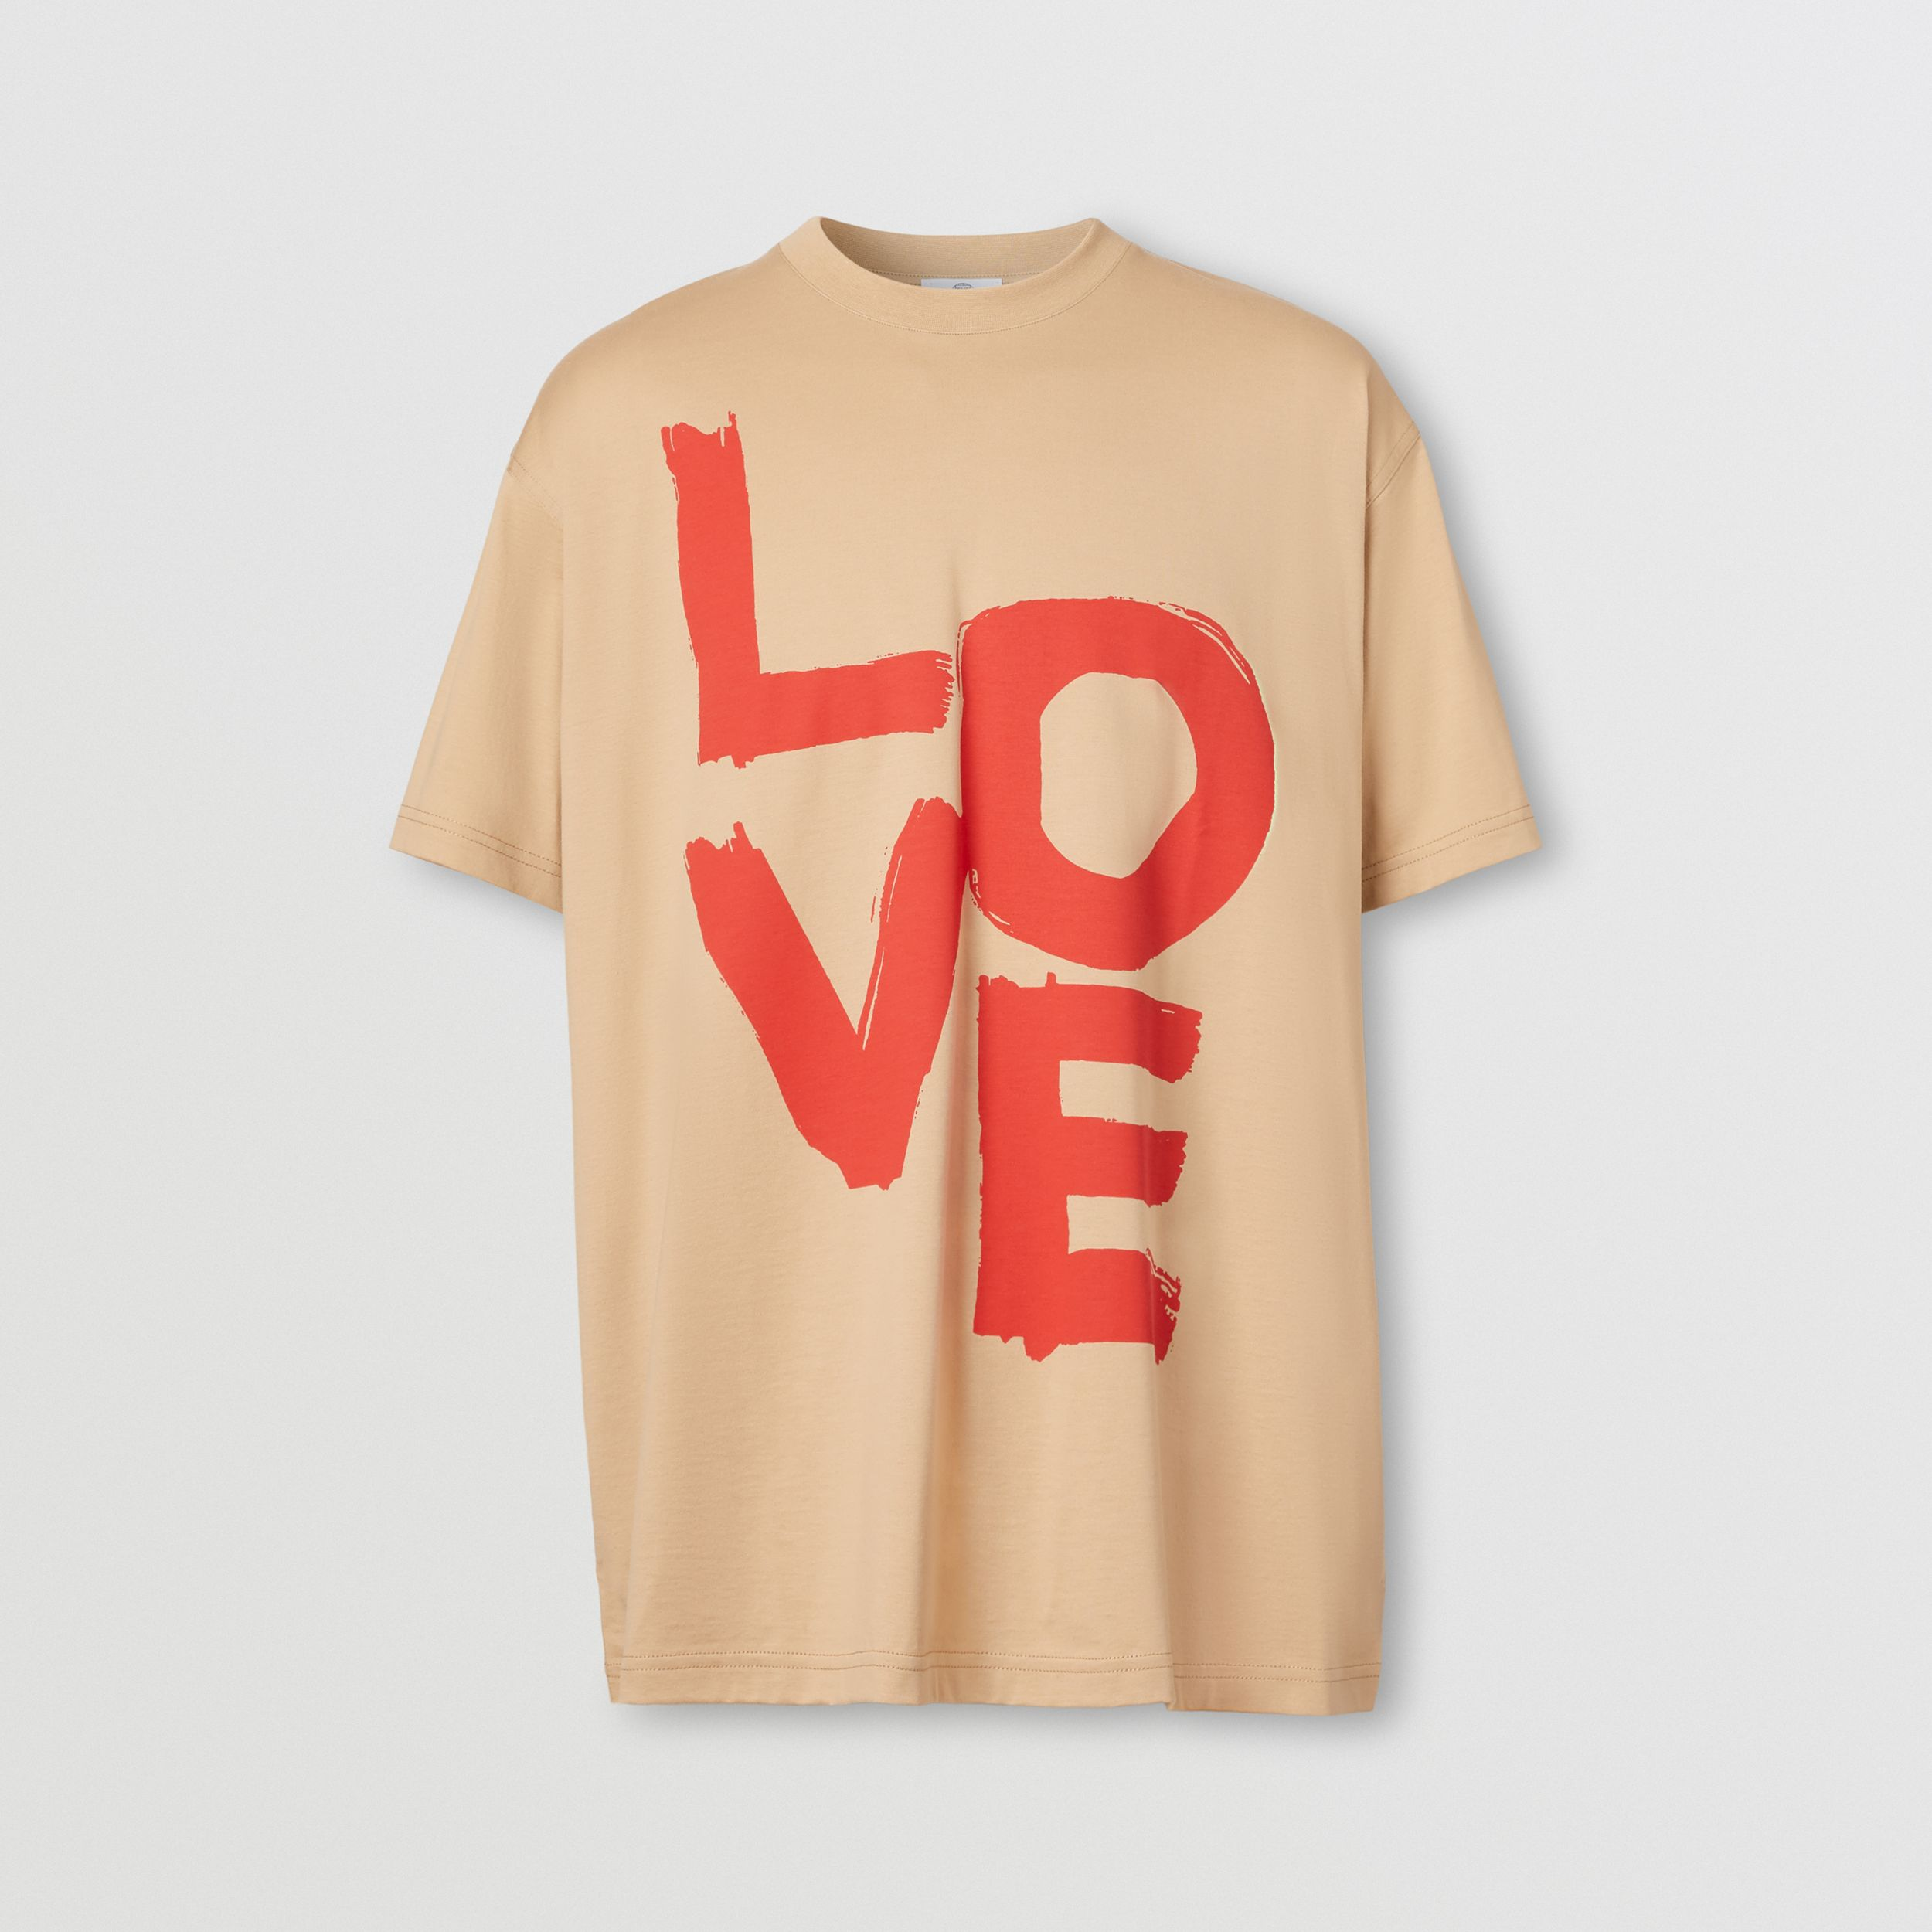 Love Print Organic Cotton Oversized T-shirt in Soft Fawn - Men | Burberry - 4